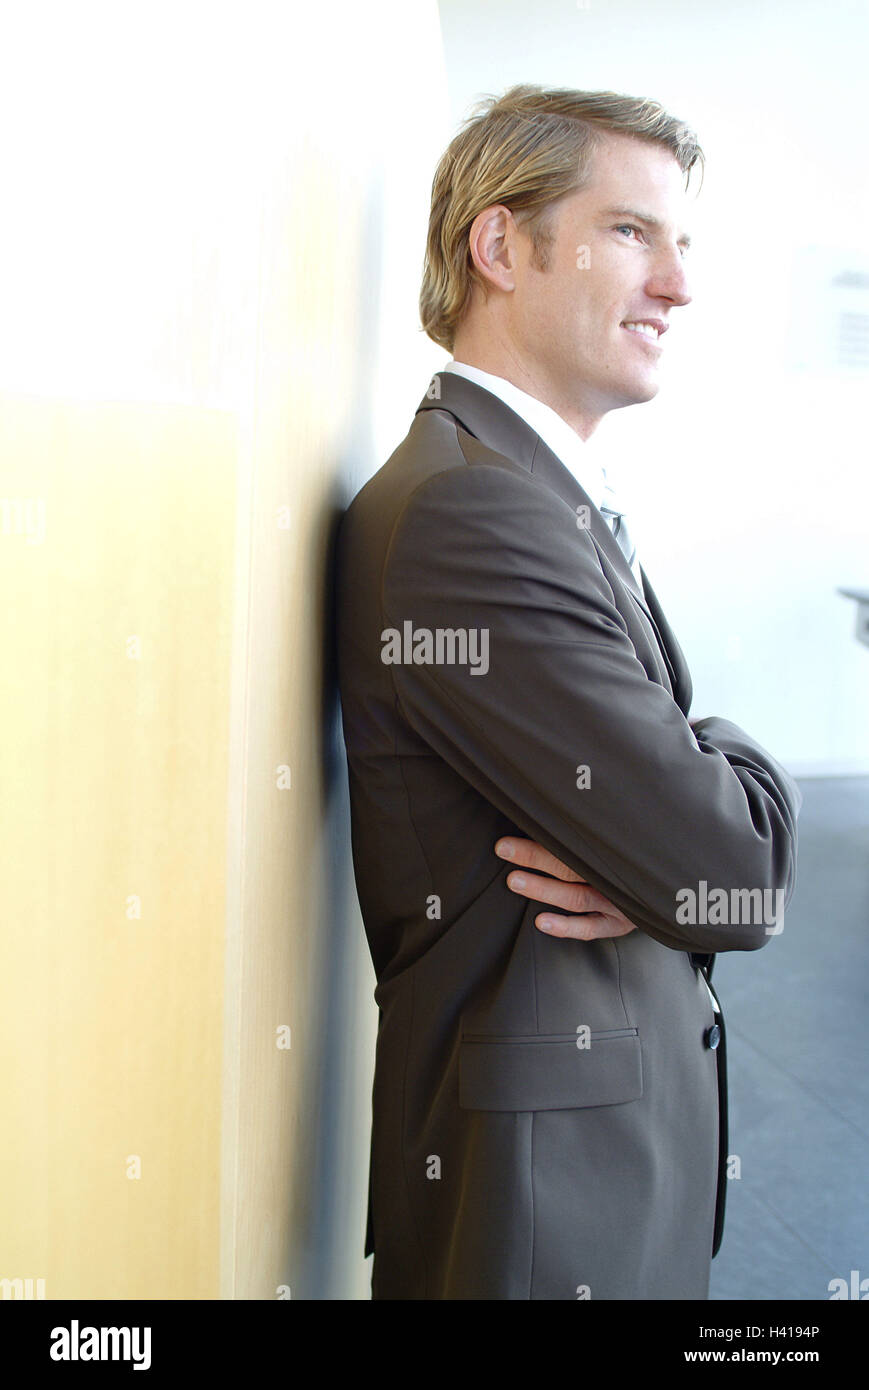 Man, young, contently, half portrait, side view, business, office, businessman, Manager, office worker, blond, blue - Stock Image